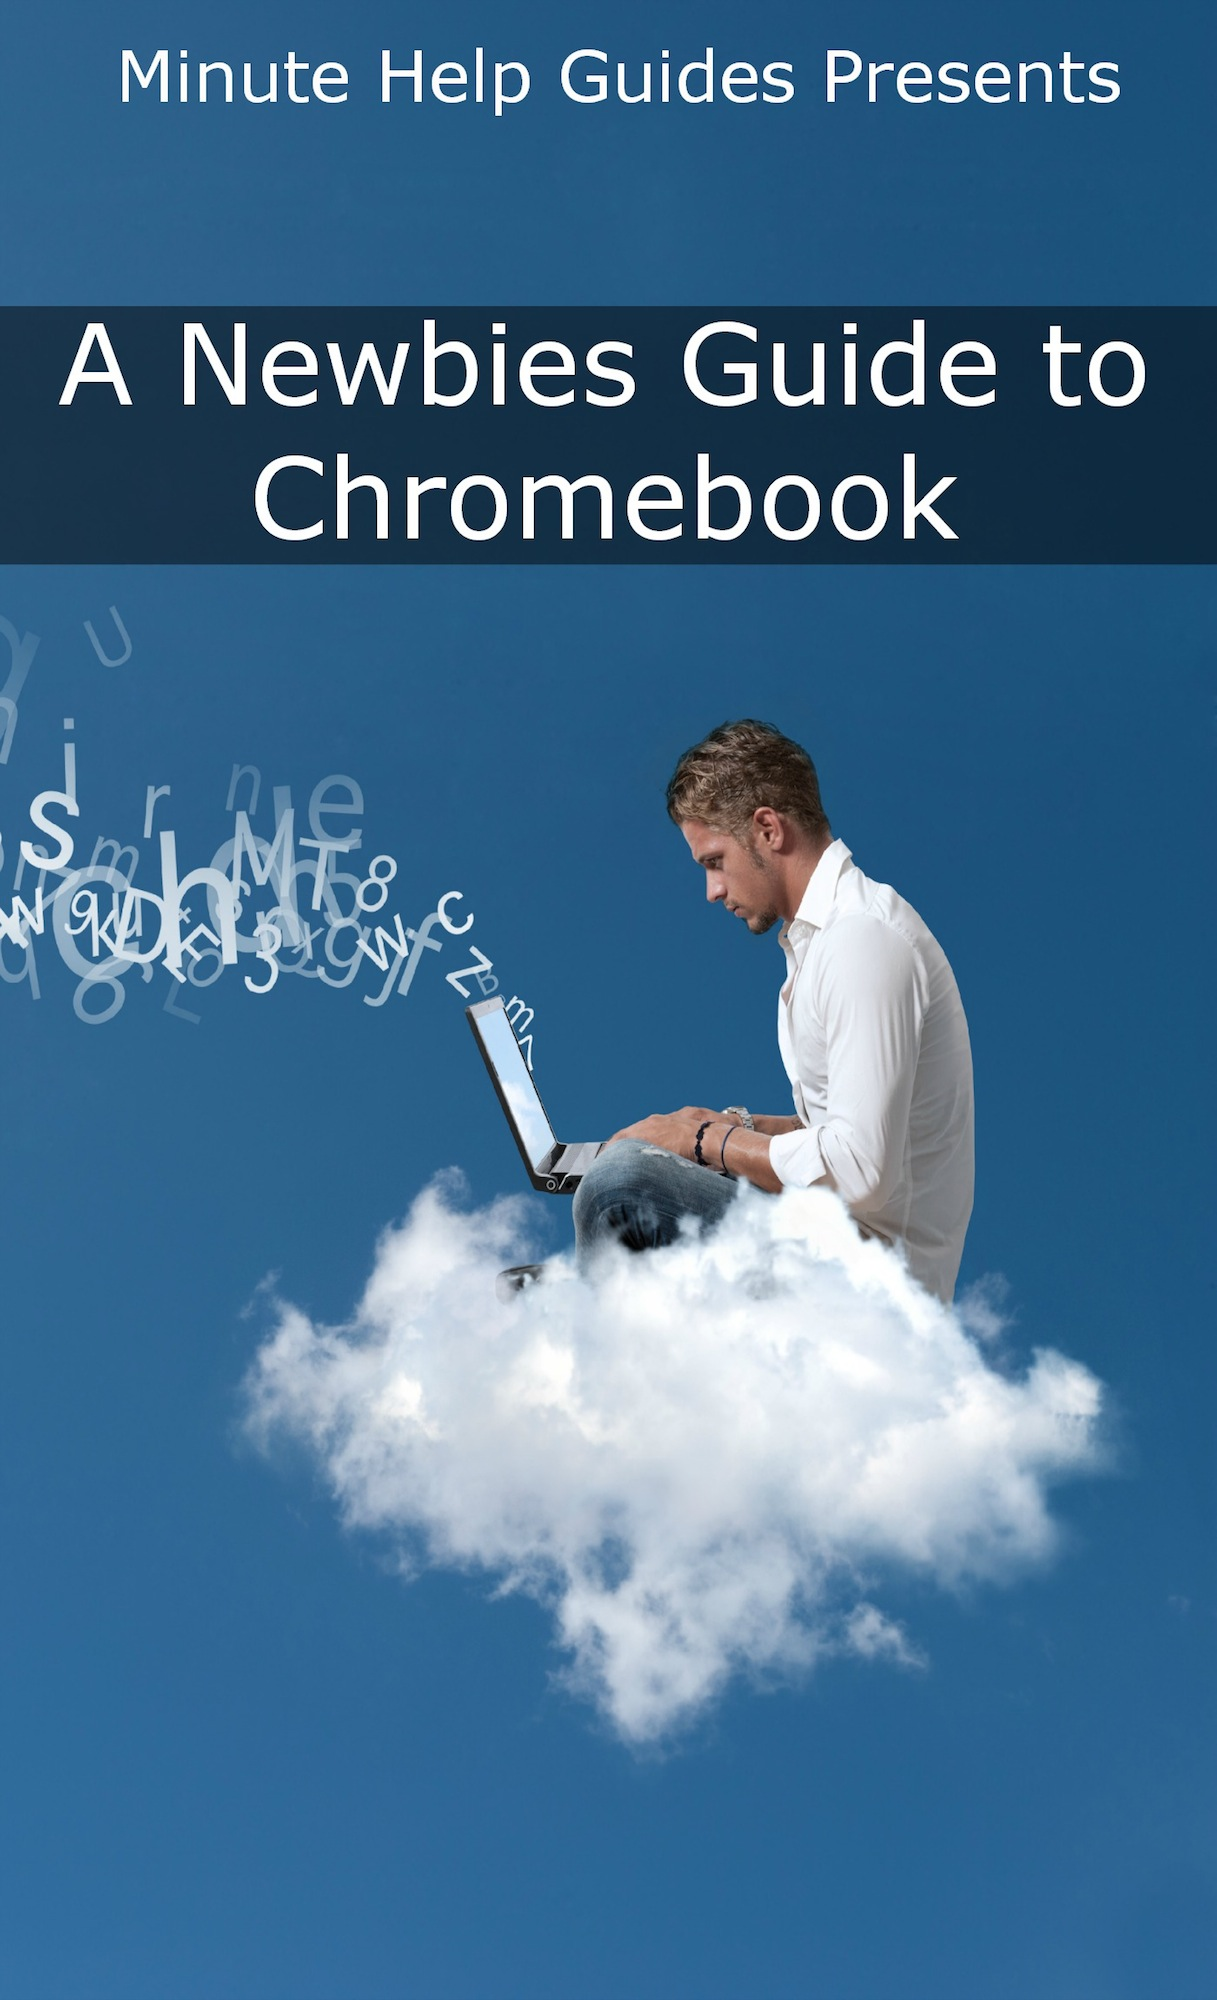 A Newbies Guide to Chromebook